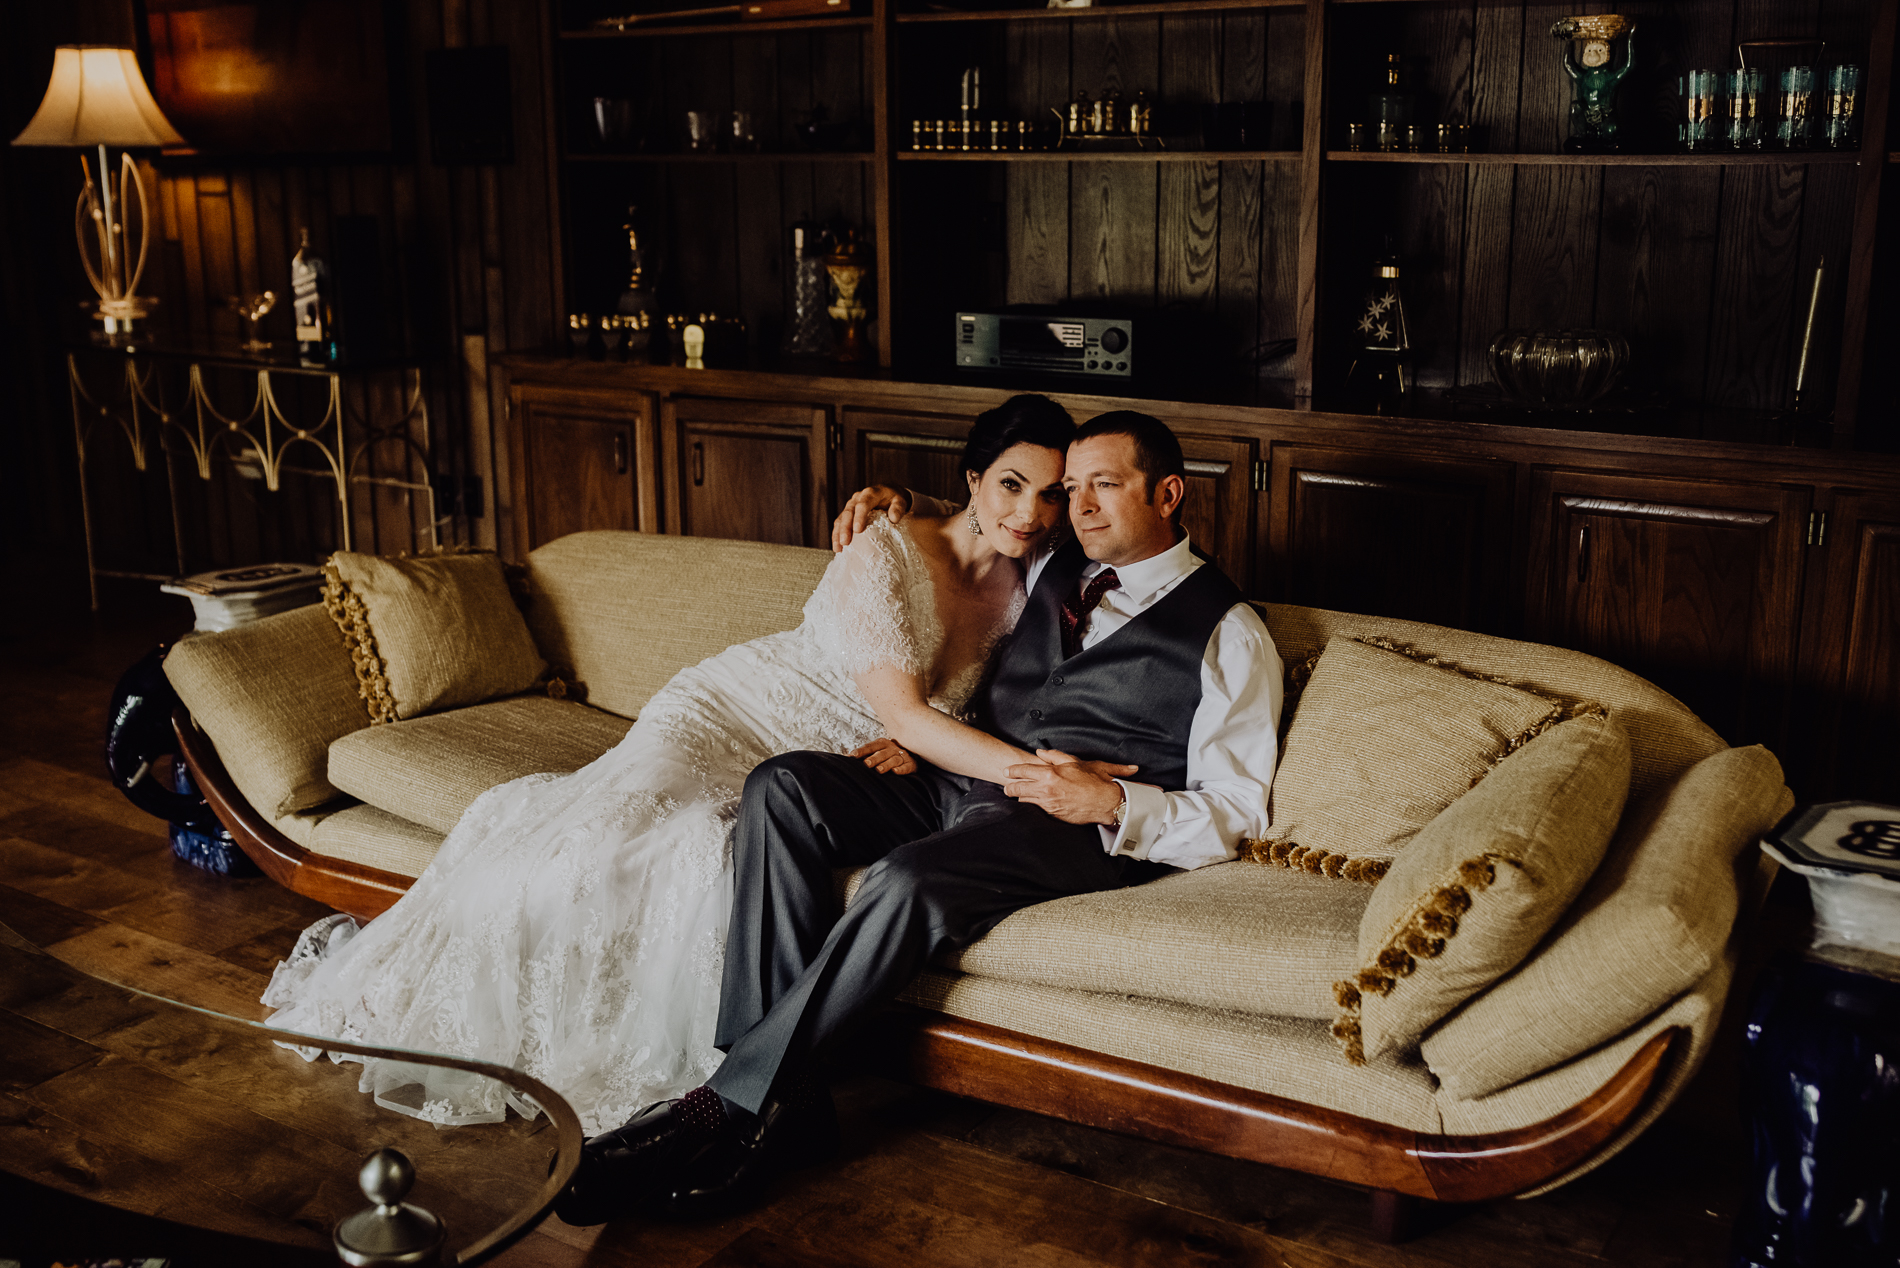 julia and dennis wedding at graceland by wilde company-134.jpg